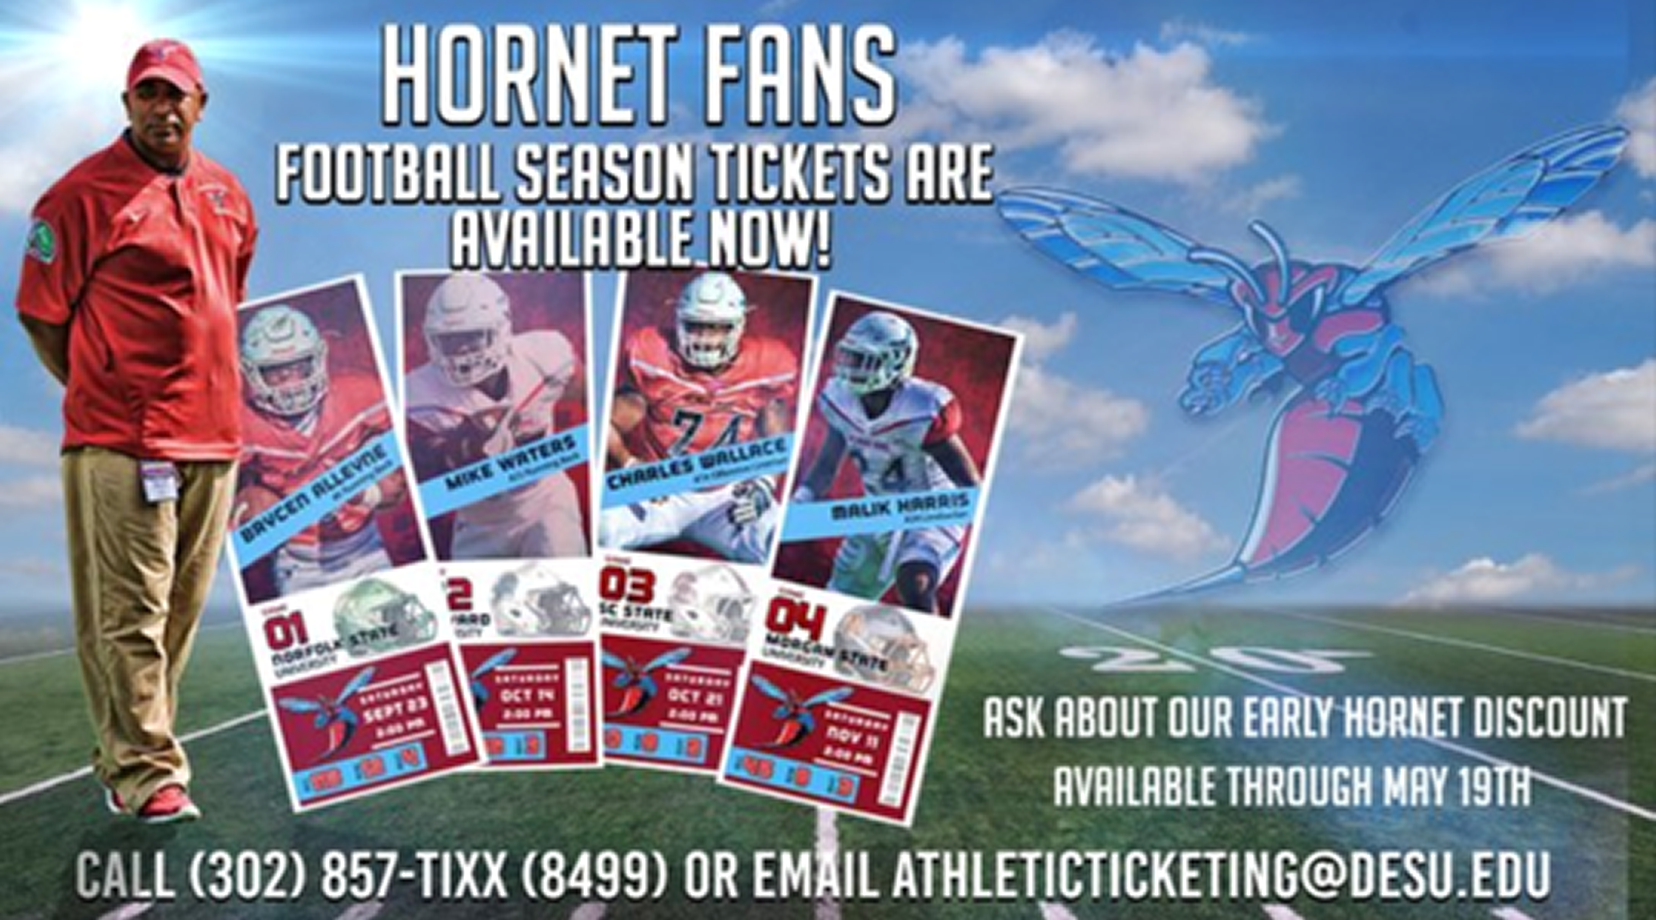 DSU football season tickets are available now!